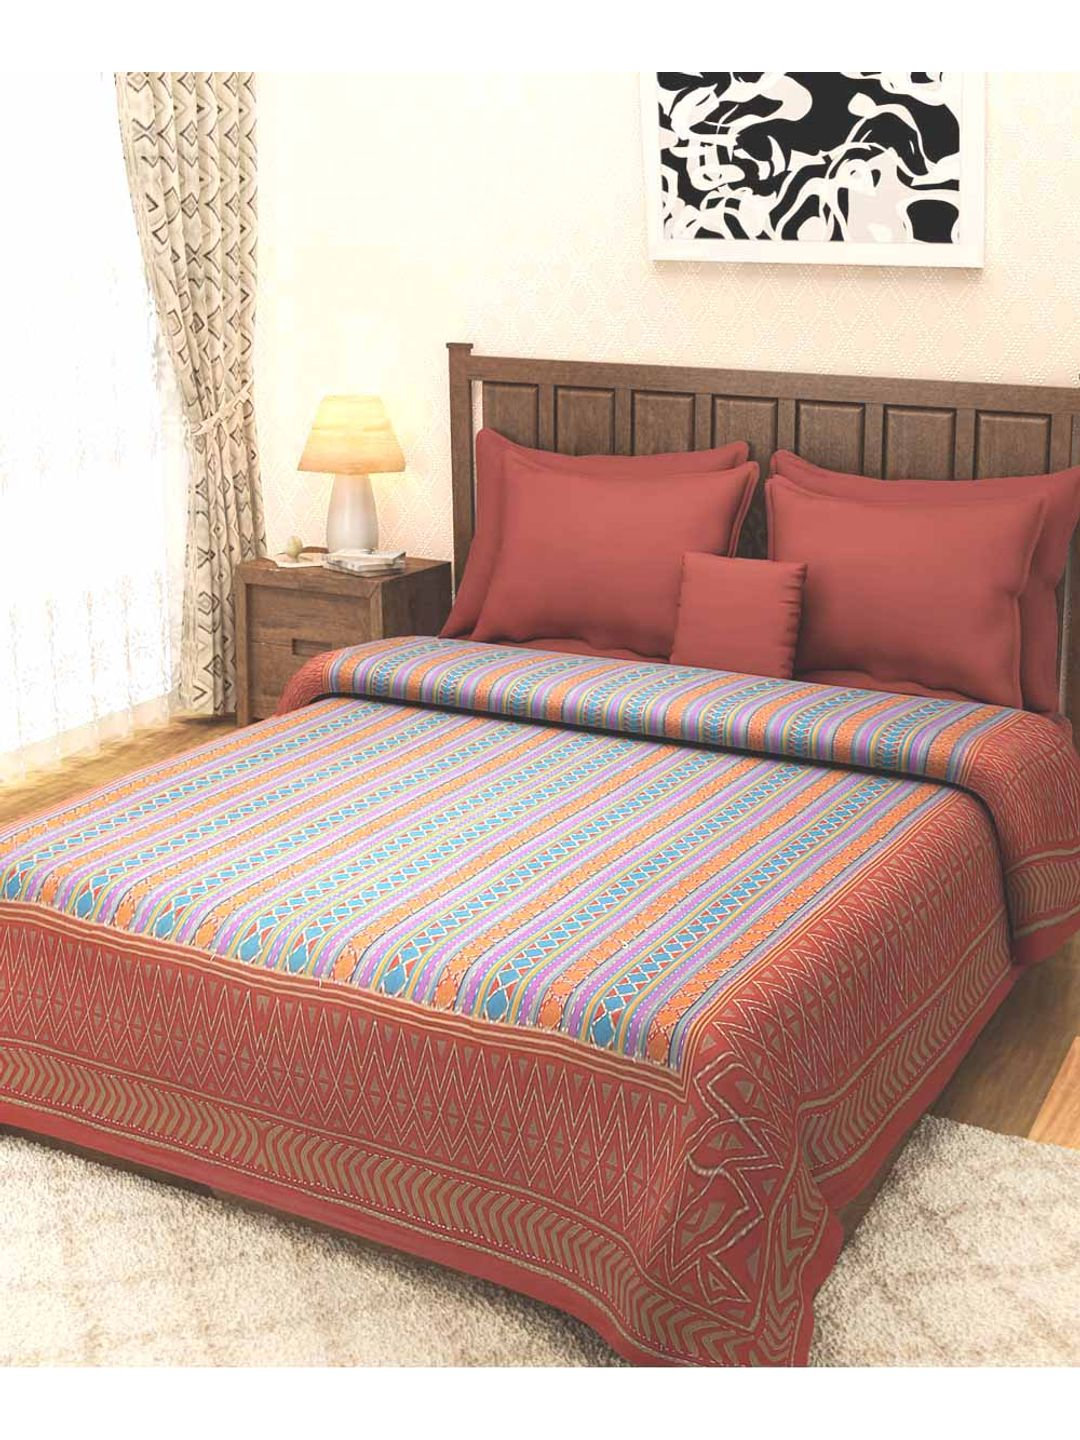 Rajasthani Rust Brown Kantha Bed Cover